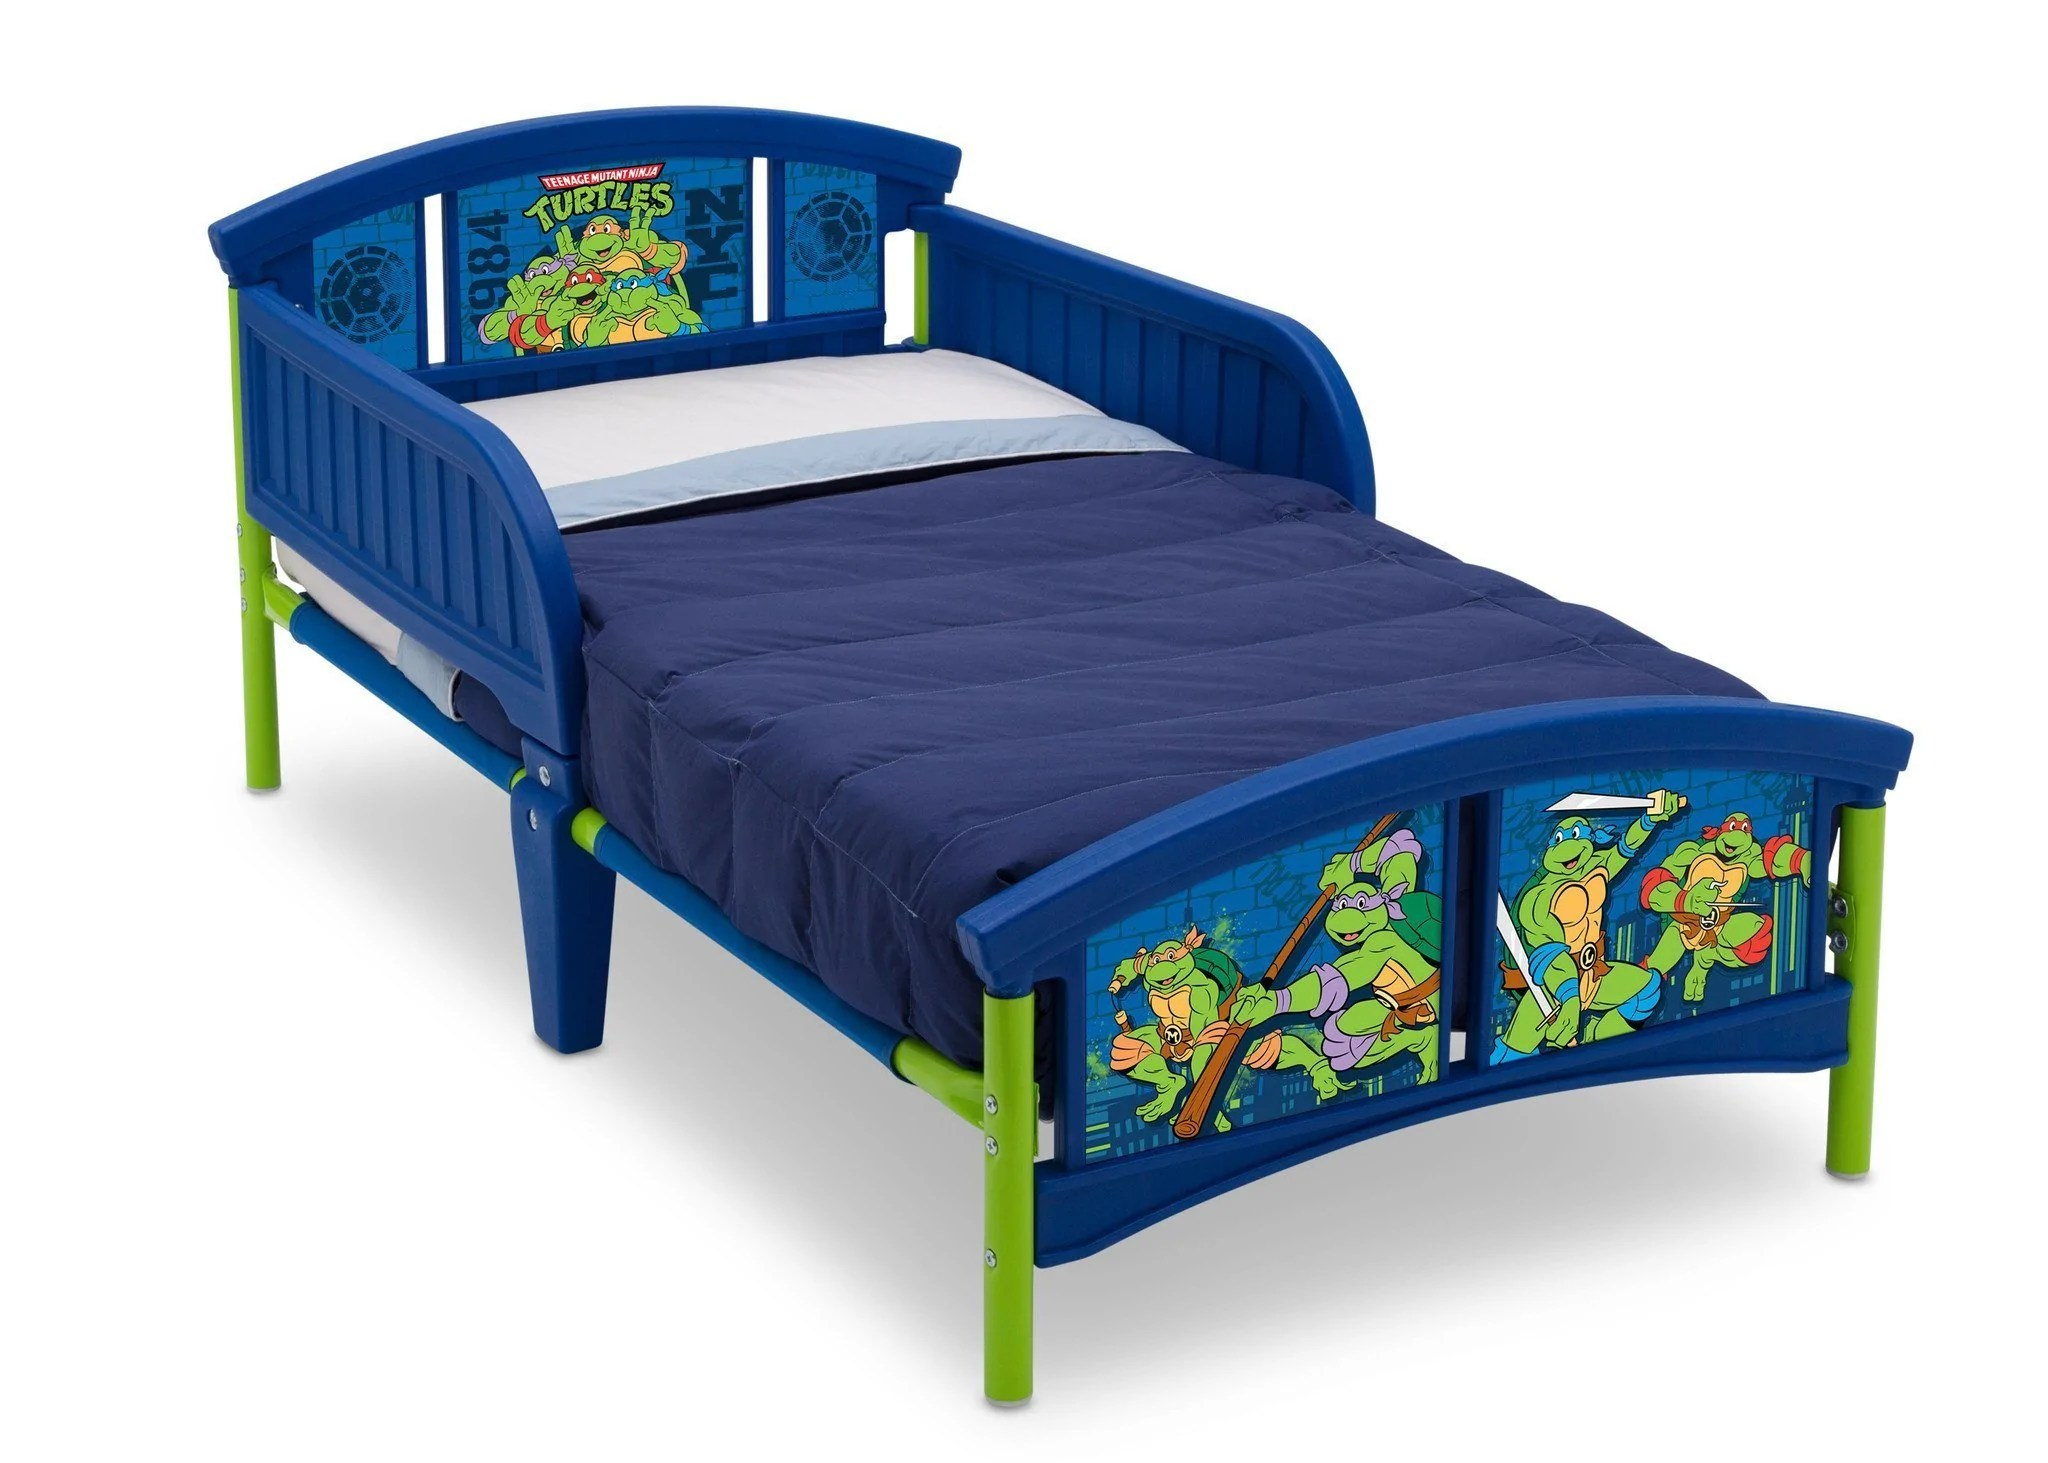 Baby Relax Toddler Bed Teenage Mutant Ninja Turtles Plastic Toddler Bed Delta